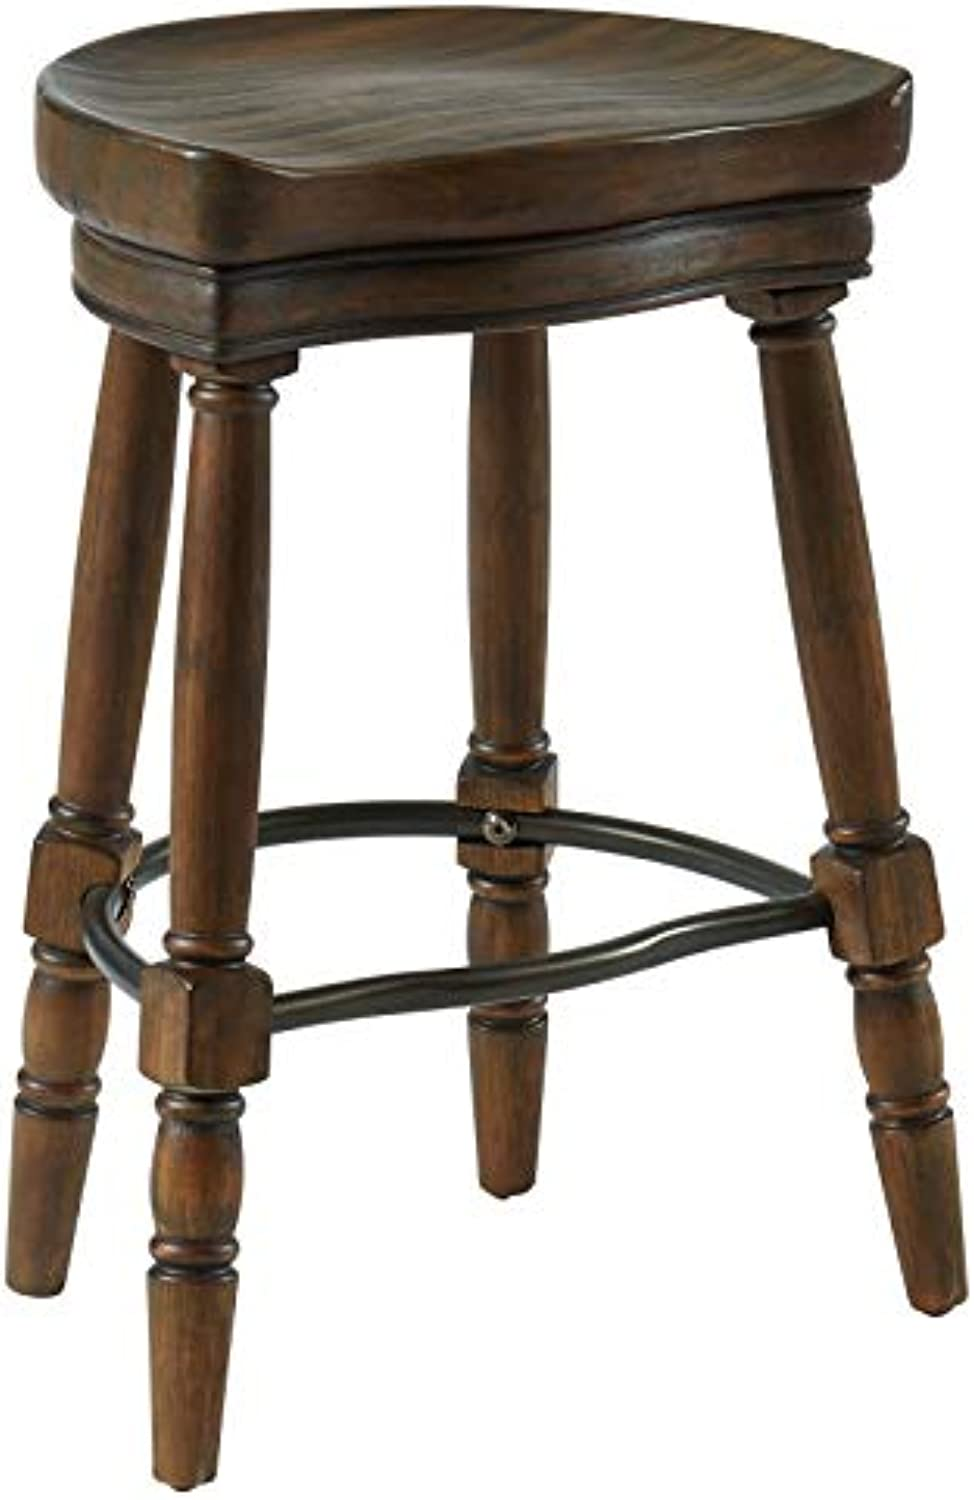 Pirnak Traditional Solid Wood & Metal 26'' Counter Stool in Rustic Oak